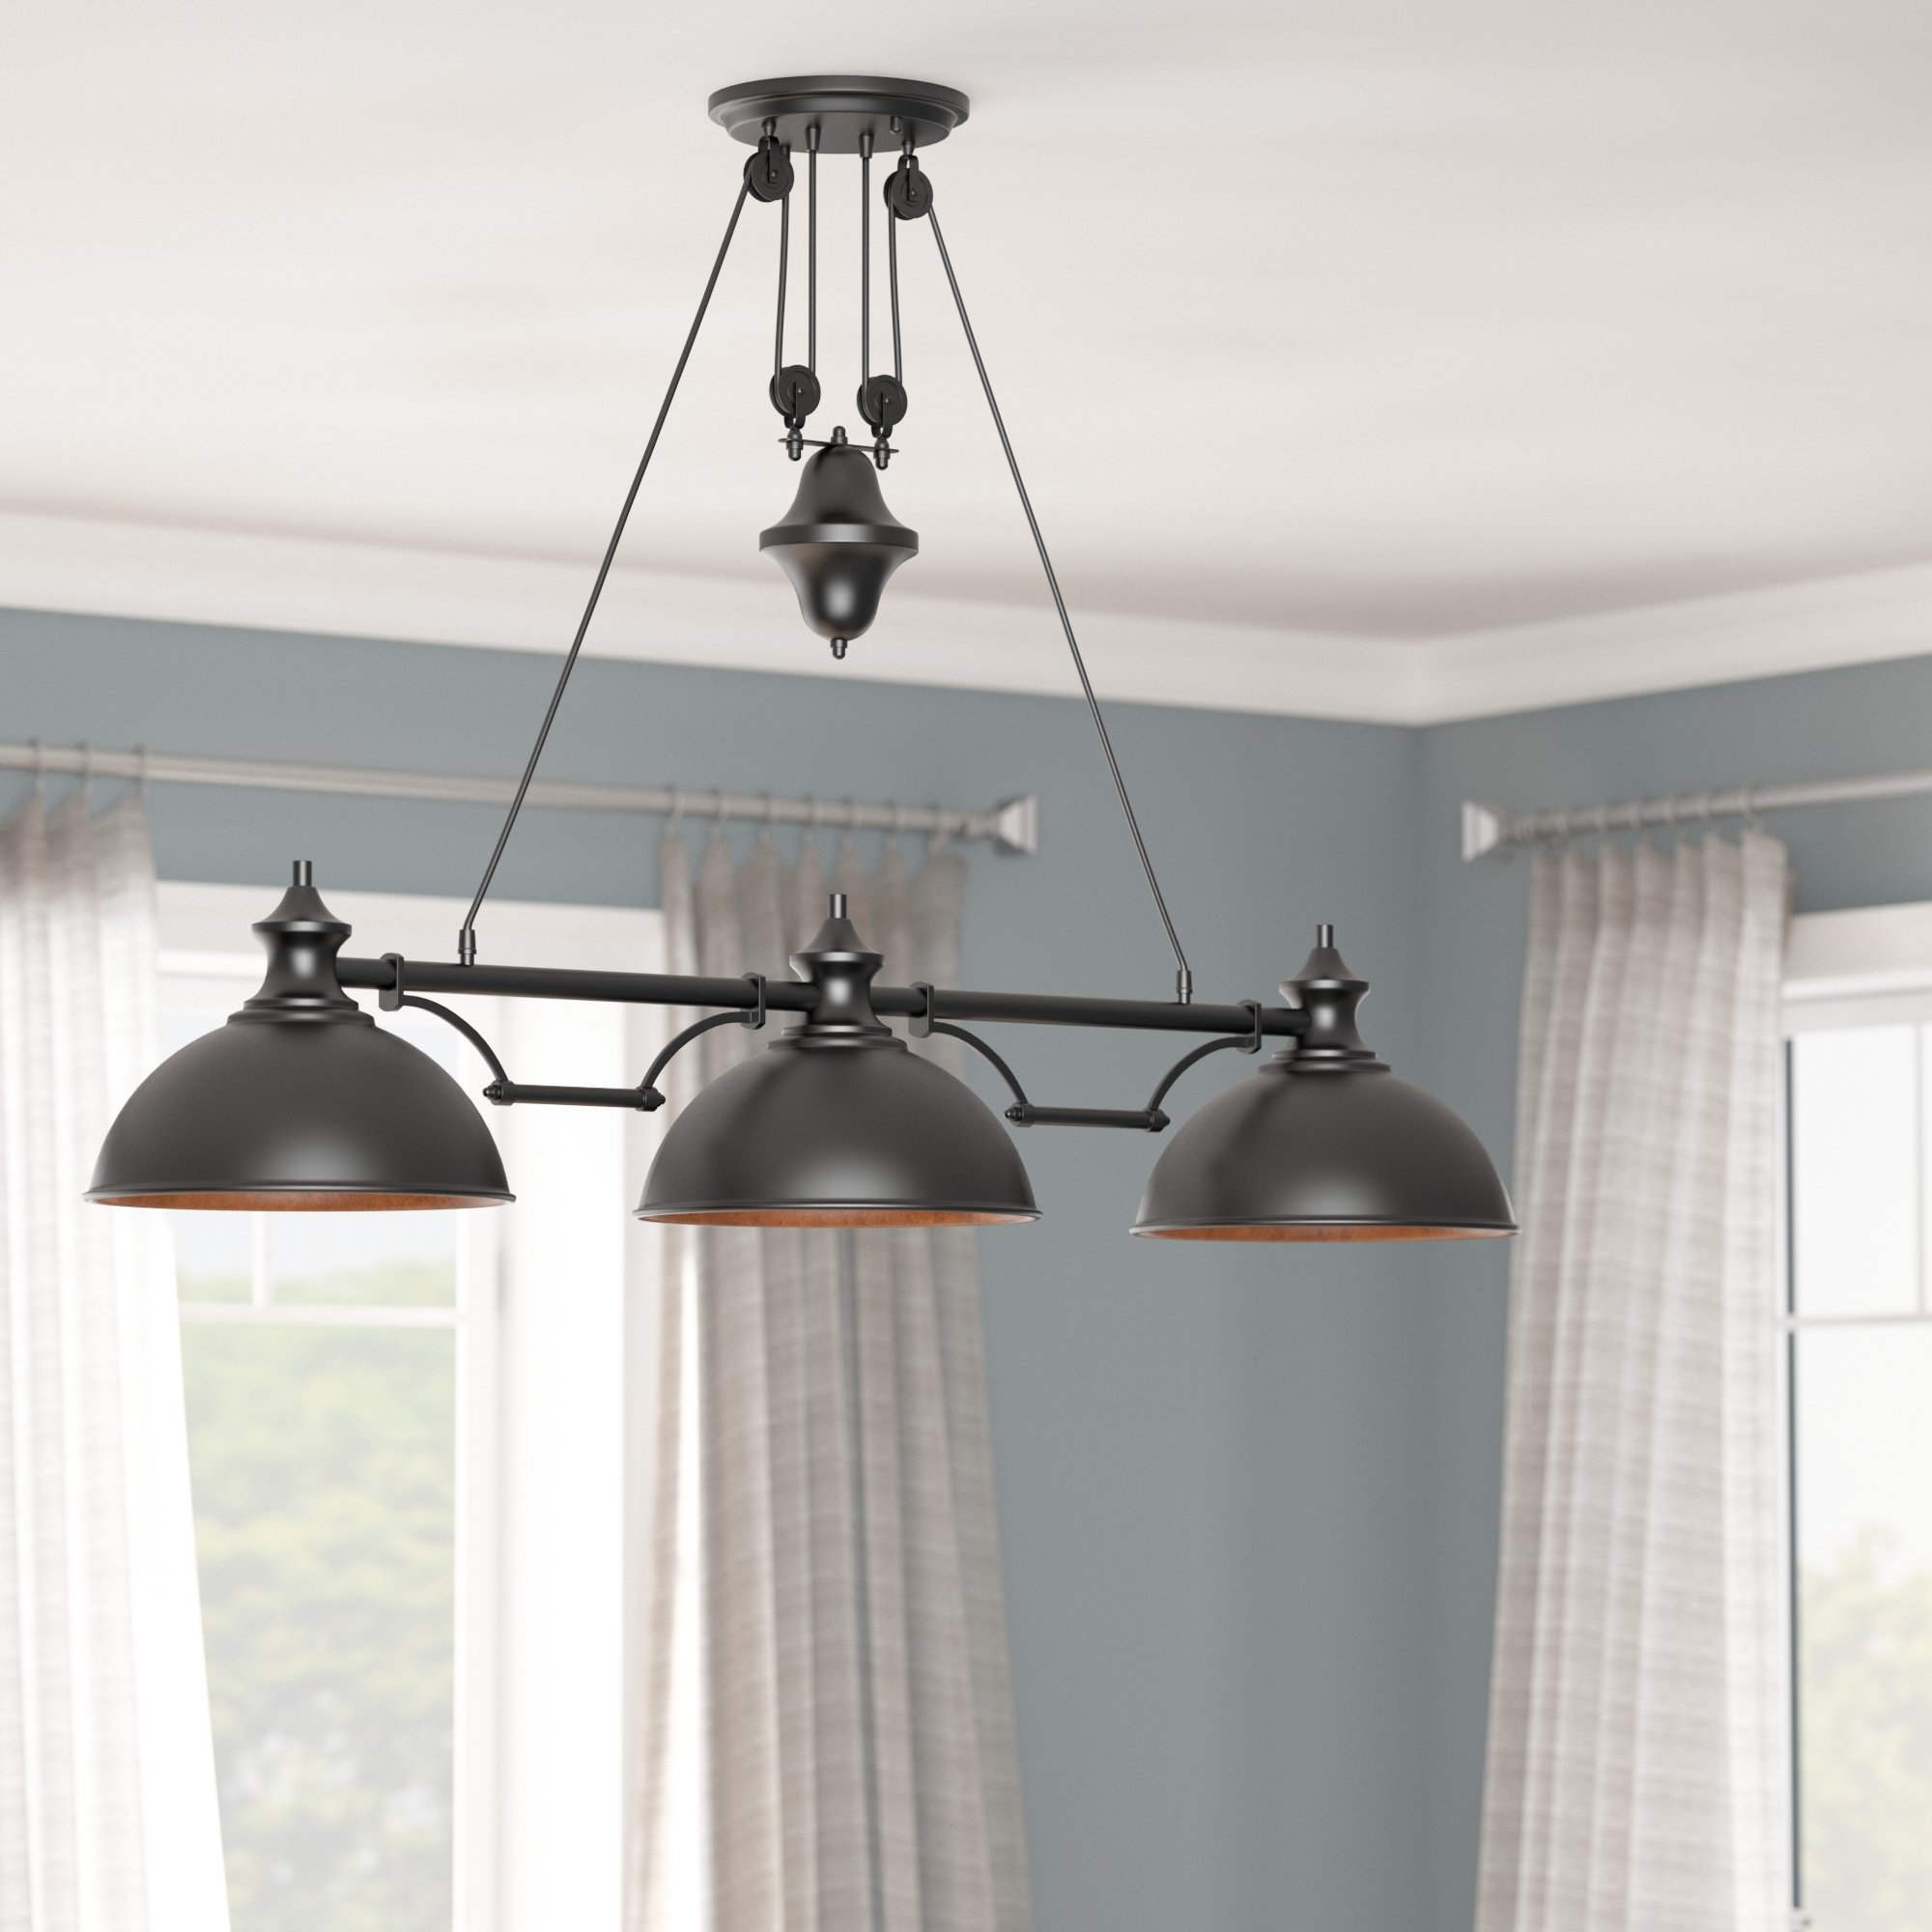 Rodriques 3 Light Kitchen Island Pendant With Regard To Well Liked Ariel 2 Light Kitchen Island Dome Pendants (View 25 of 25)